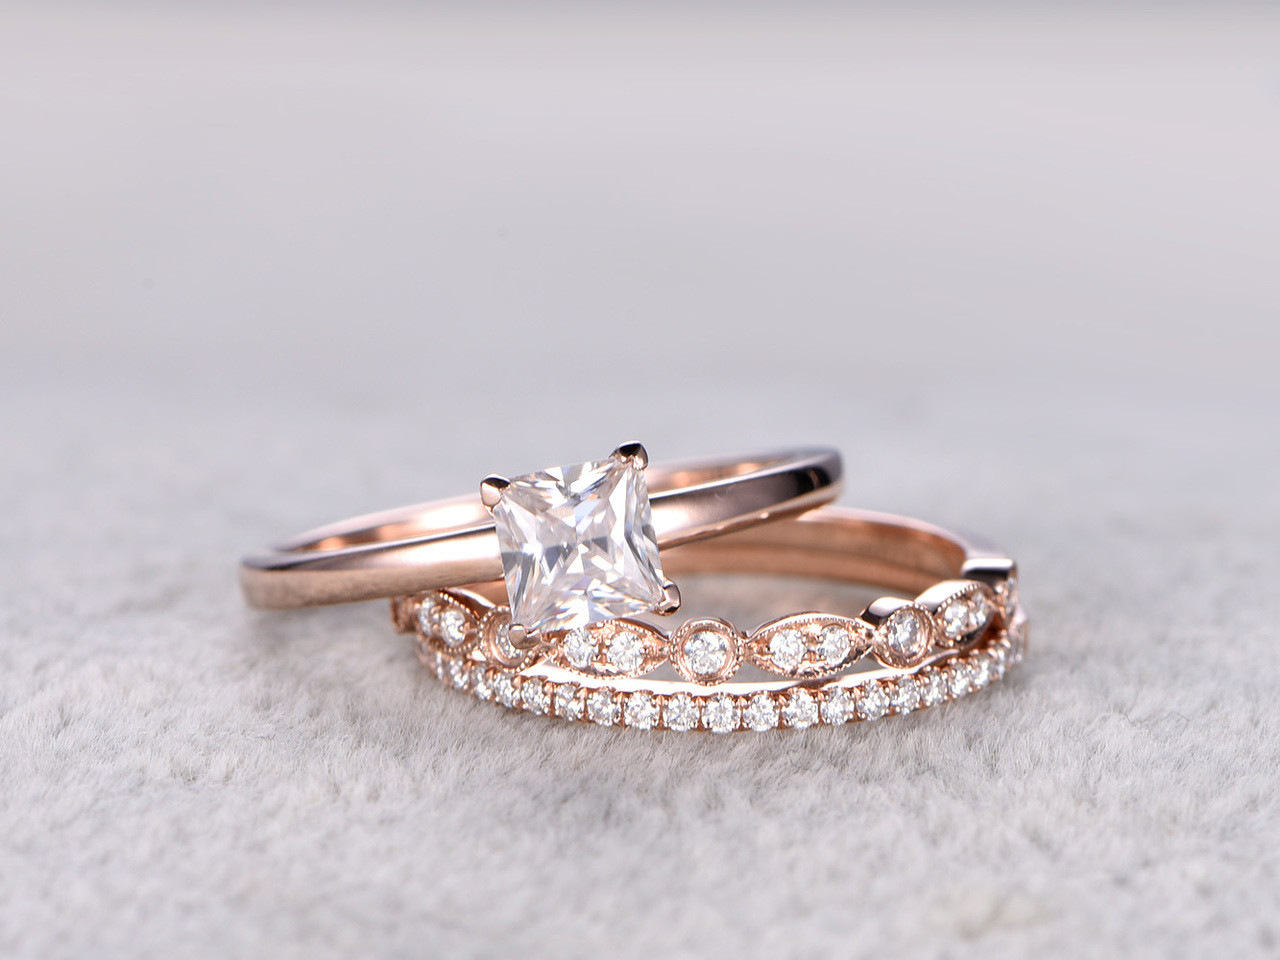 it eternity to got can made at upgrade one moissanite have they moissaniteco jewlers the custom my sparkles i and styles beautifully band does anyone wedding recommend too topic mine several rings bandeternity stones you